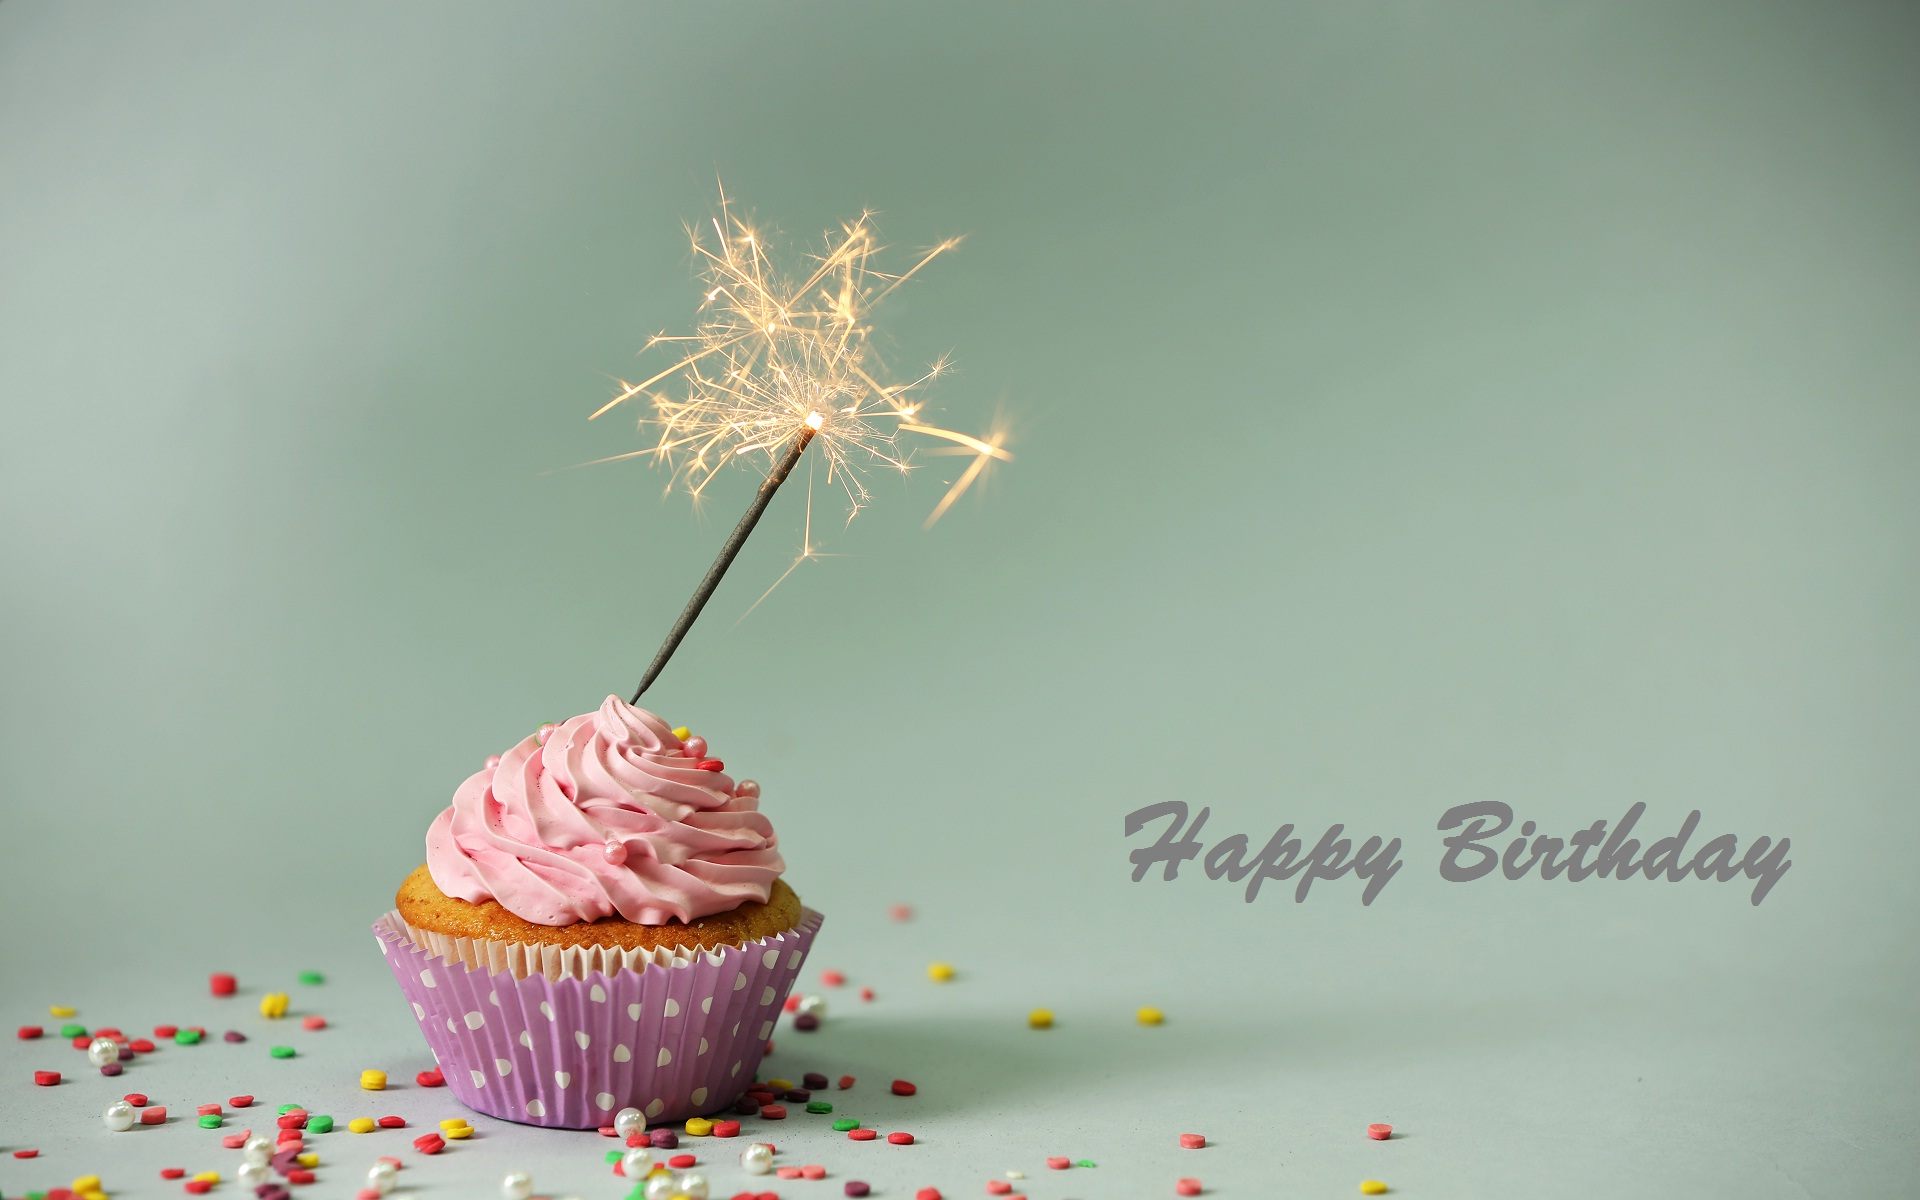 high quality birthday images ; Happy-birthday-awesome-high-quality-wallpapers